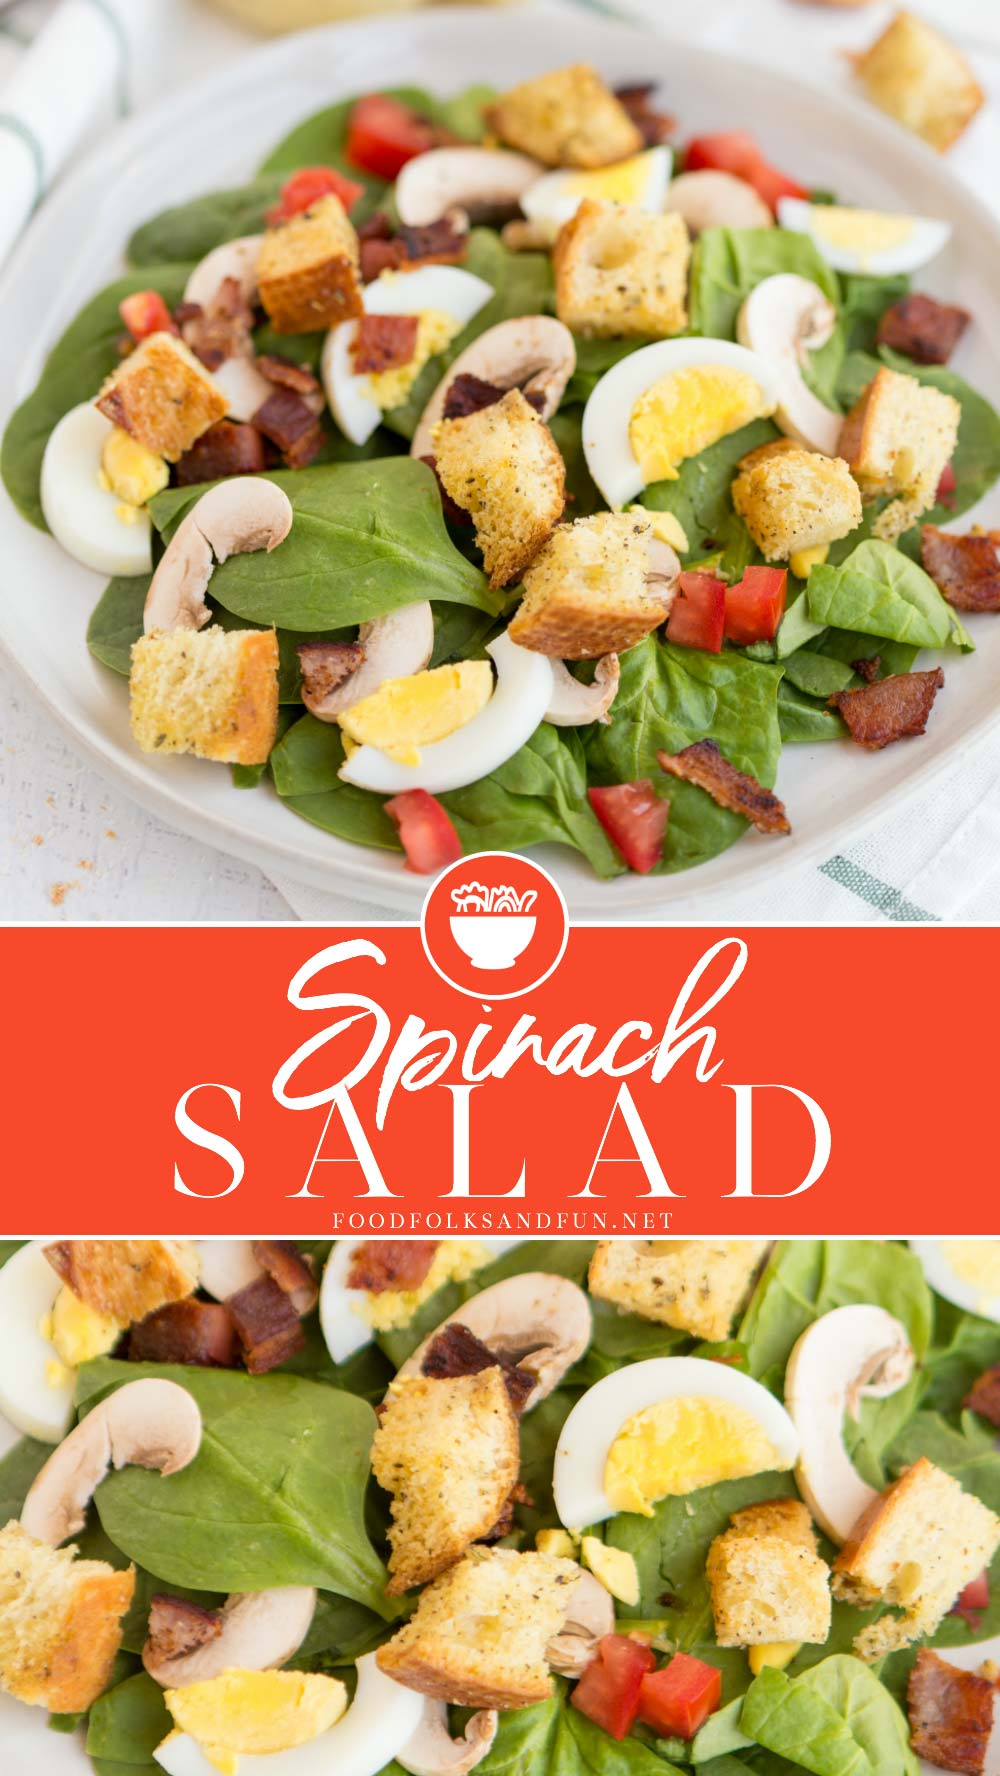 Spinach Salad is a classic that's great served year round. It's so versatile and I like to load mine up with bacon, dried cranberries, homemade croutons, and the best spinach salad dressing around! via @foodfolksandfun